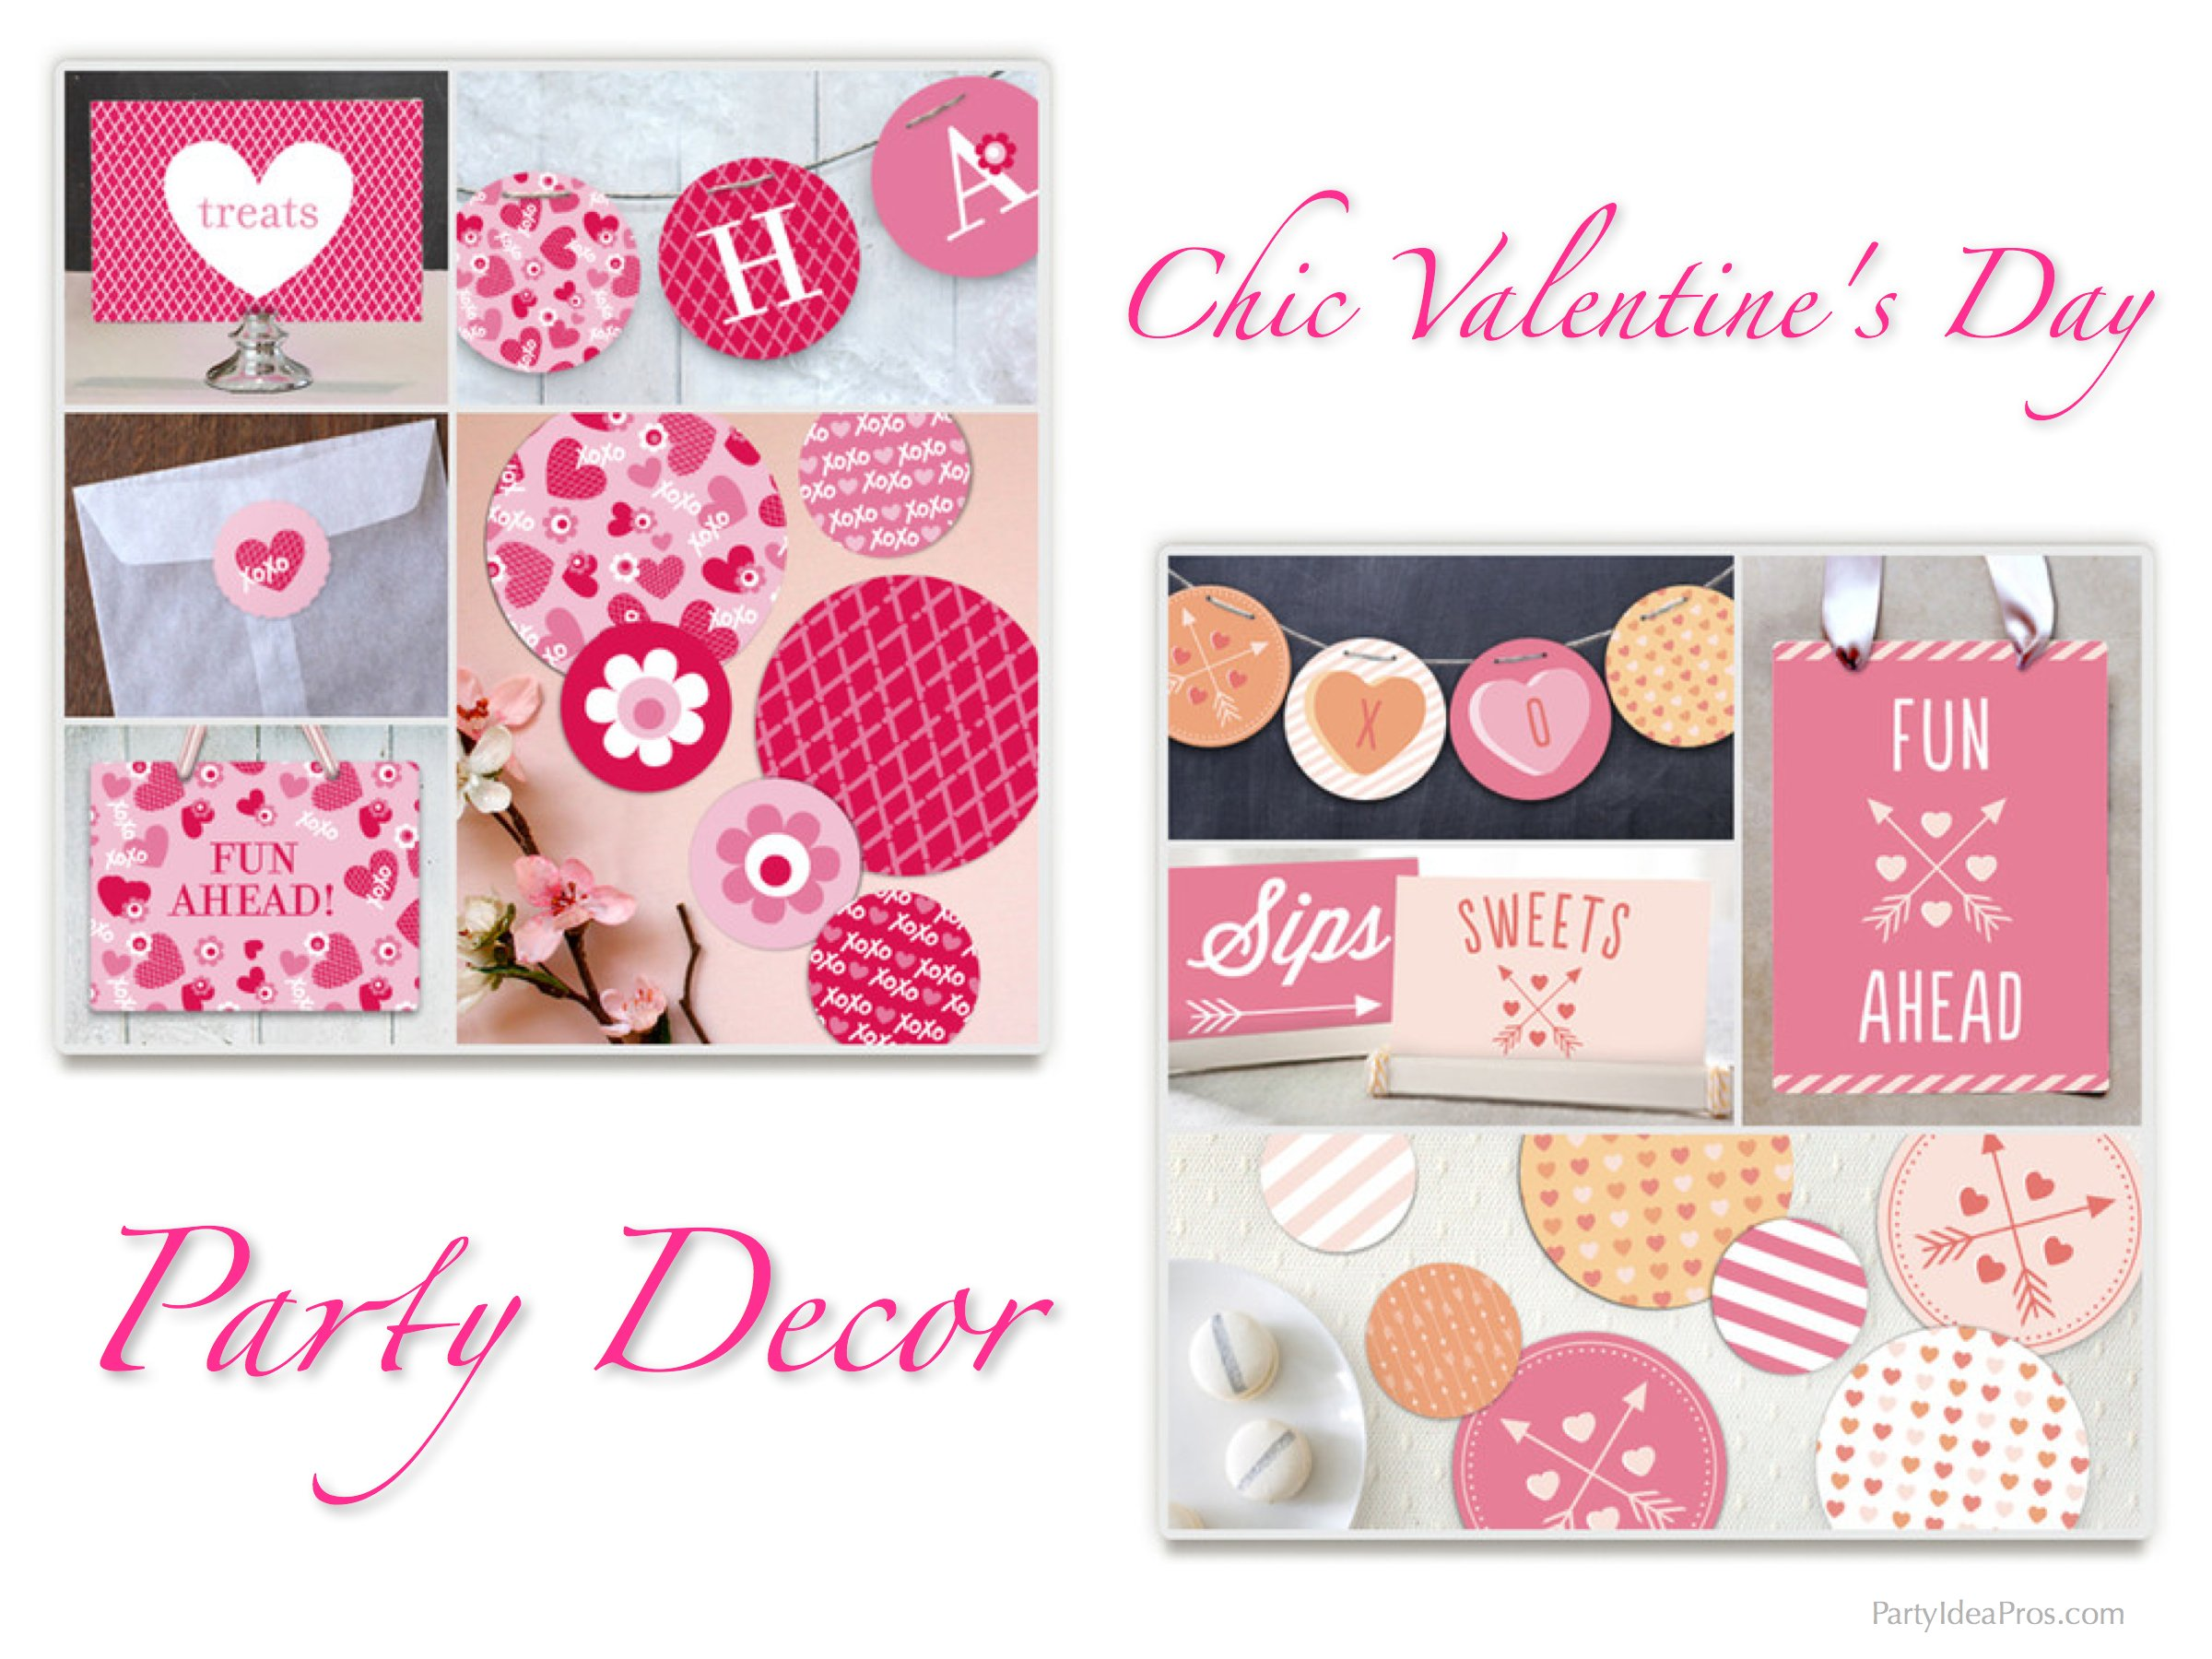 Chic Valentines Day Party Decor, Valentine's Day Party Plates & Chic Heart Theme Party Decor